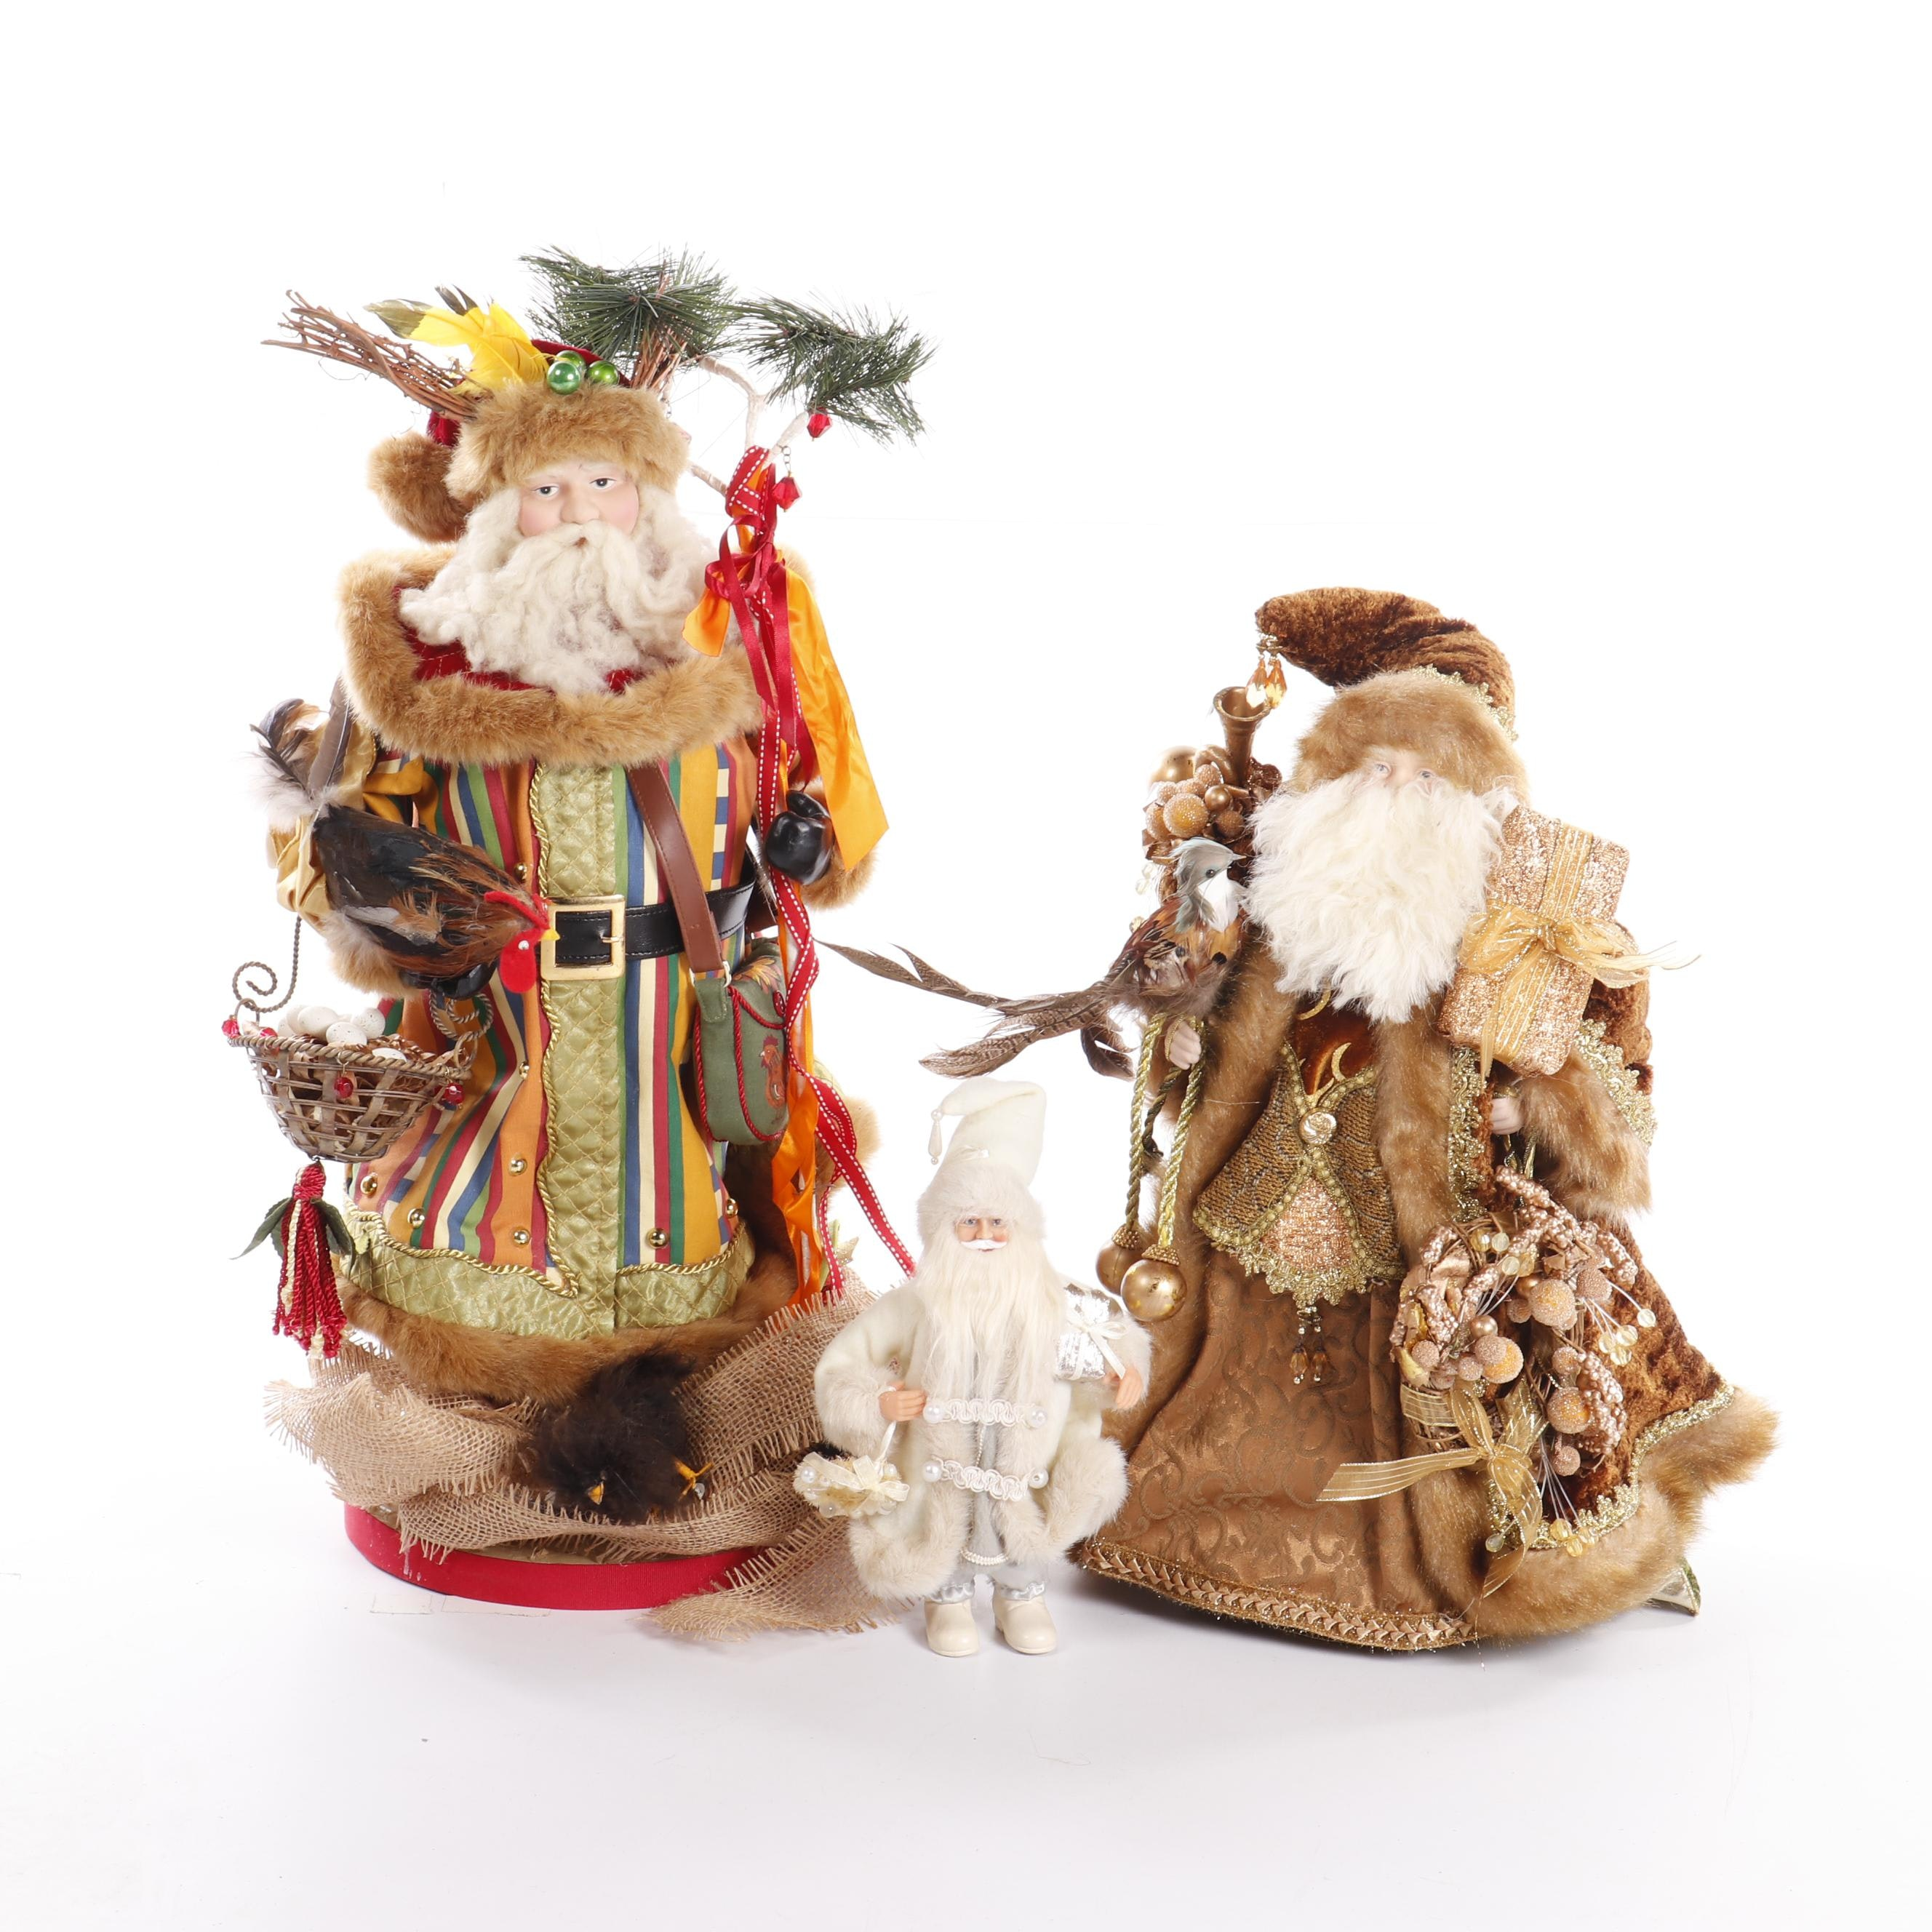 Decorative Figurines of Santa Claus with Chickens